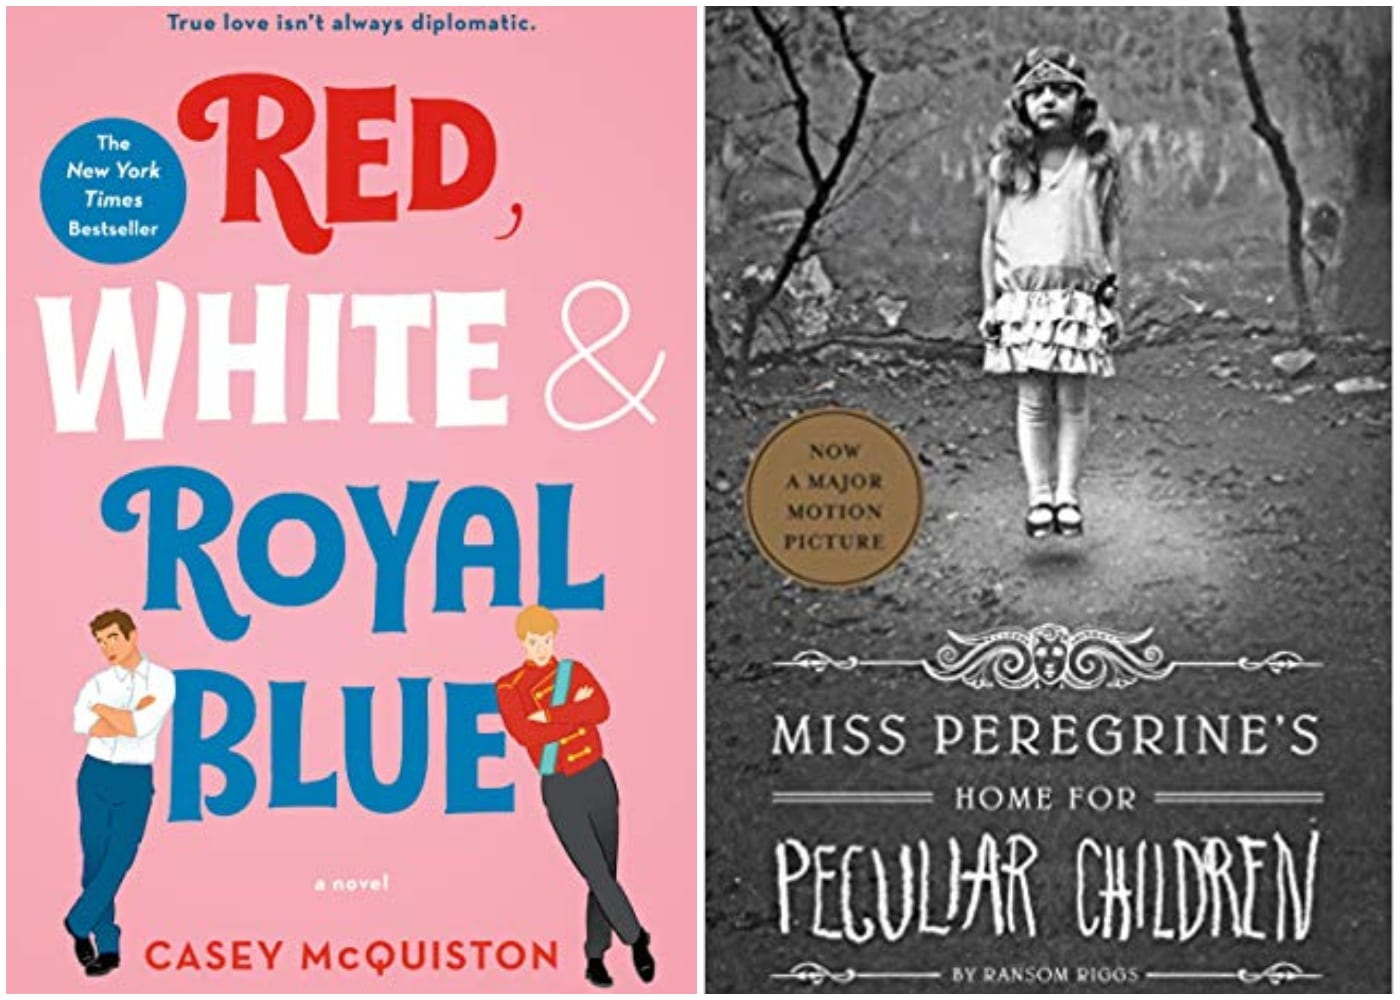 Red, White and Royal Blue | Miss Peregrine's Home for Peculiar Children